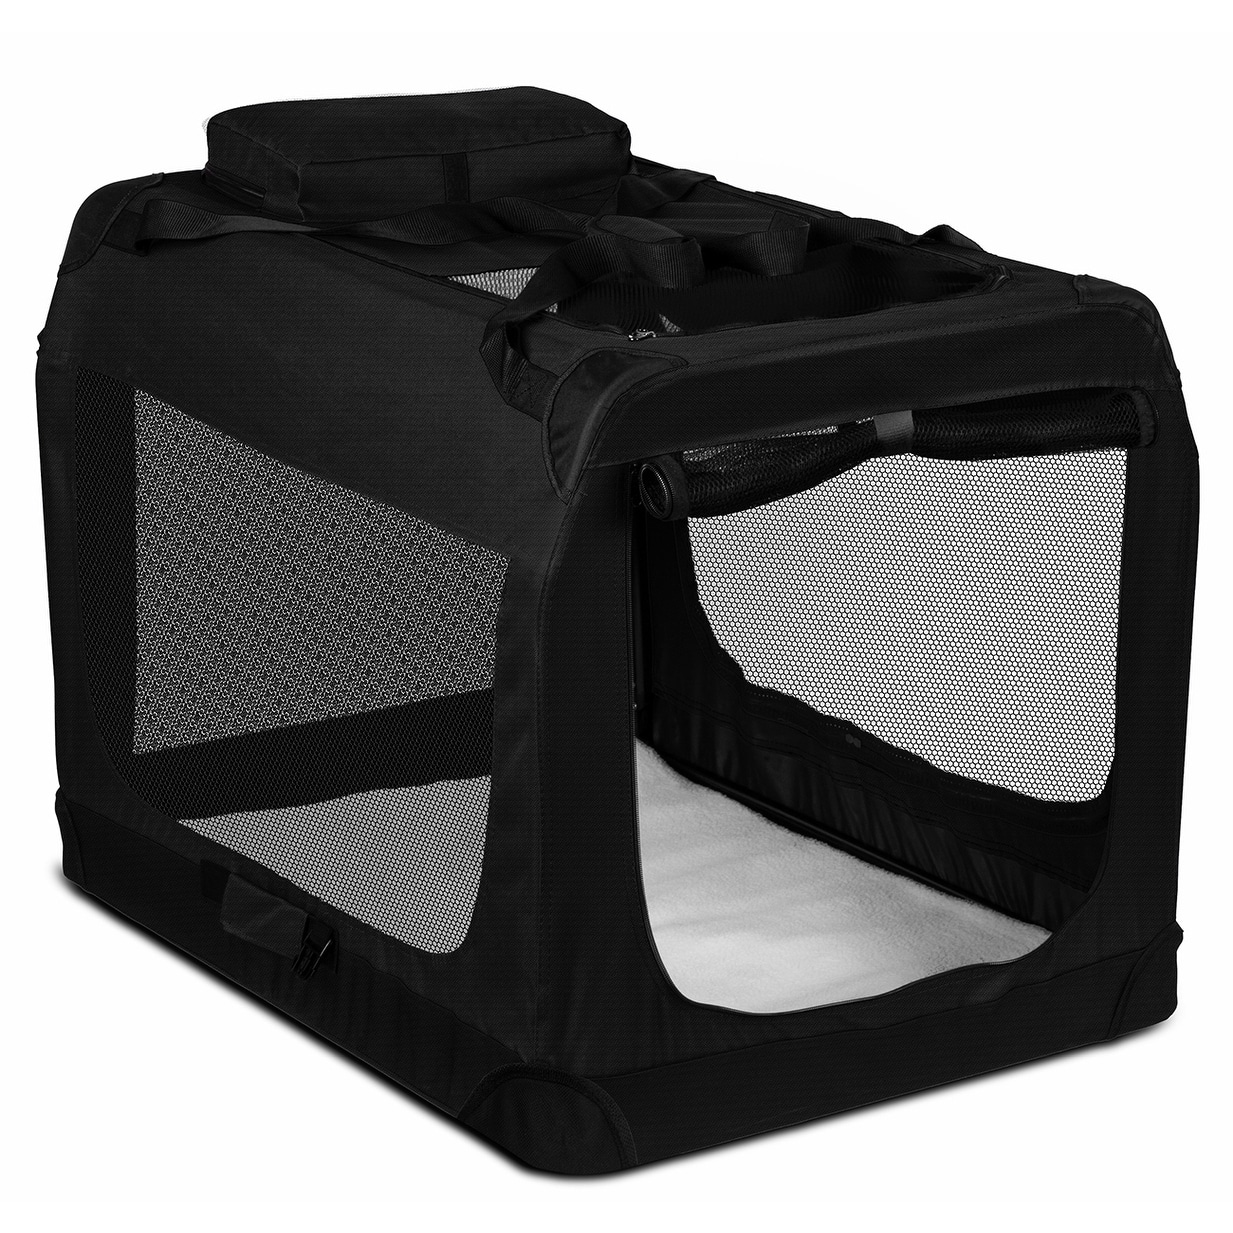 Paws & Pals Dog Crate Soft-Sided Pet Carrier - Foldable P...